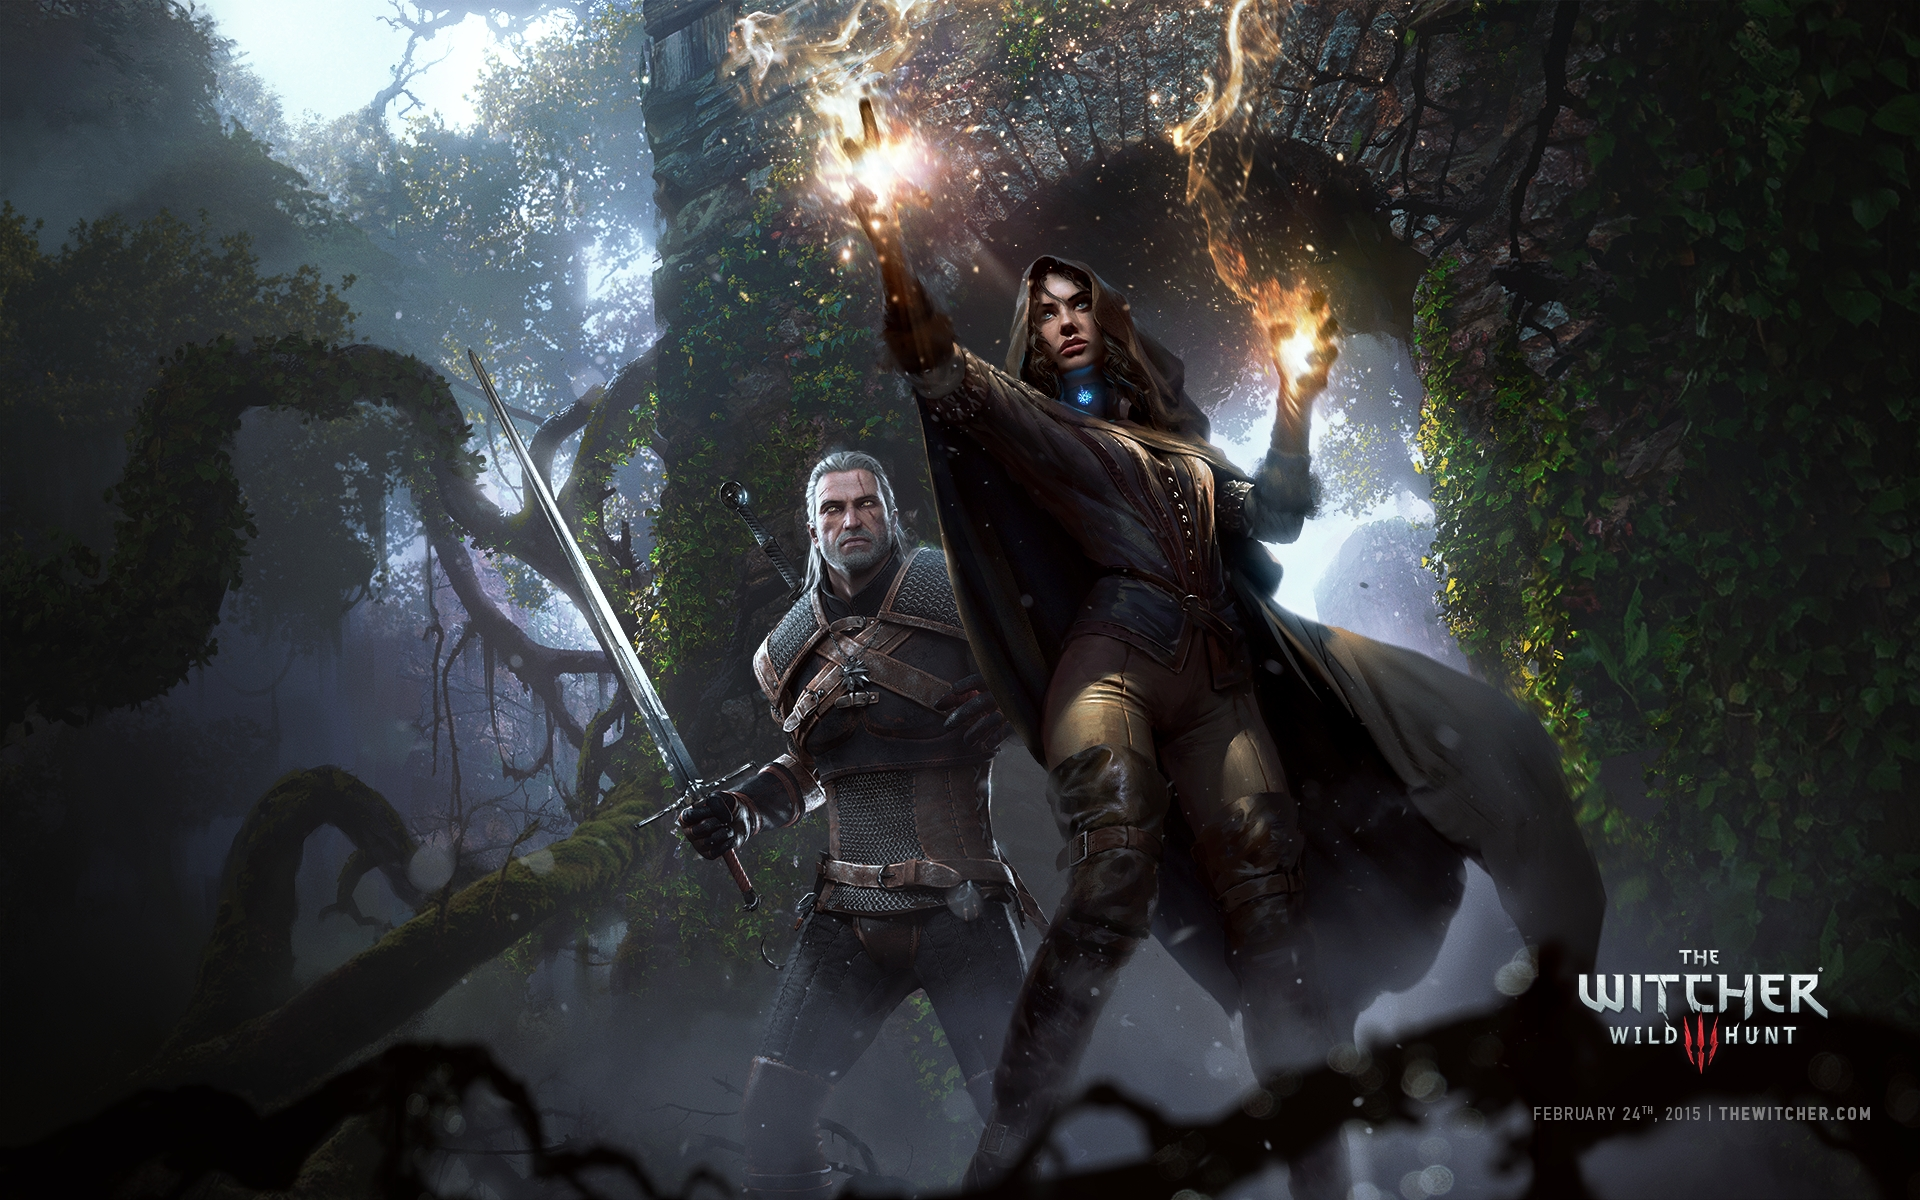 The witcher 3 wallpaper 2560x1440